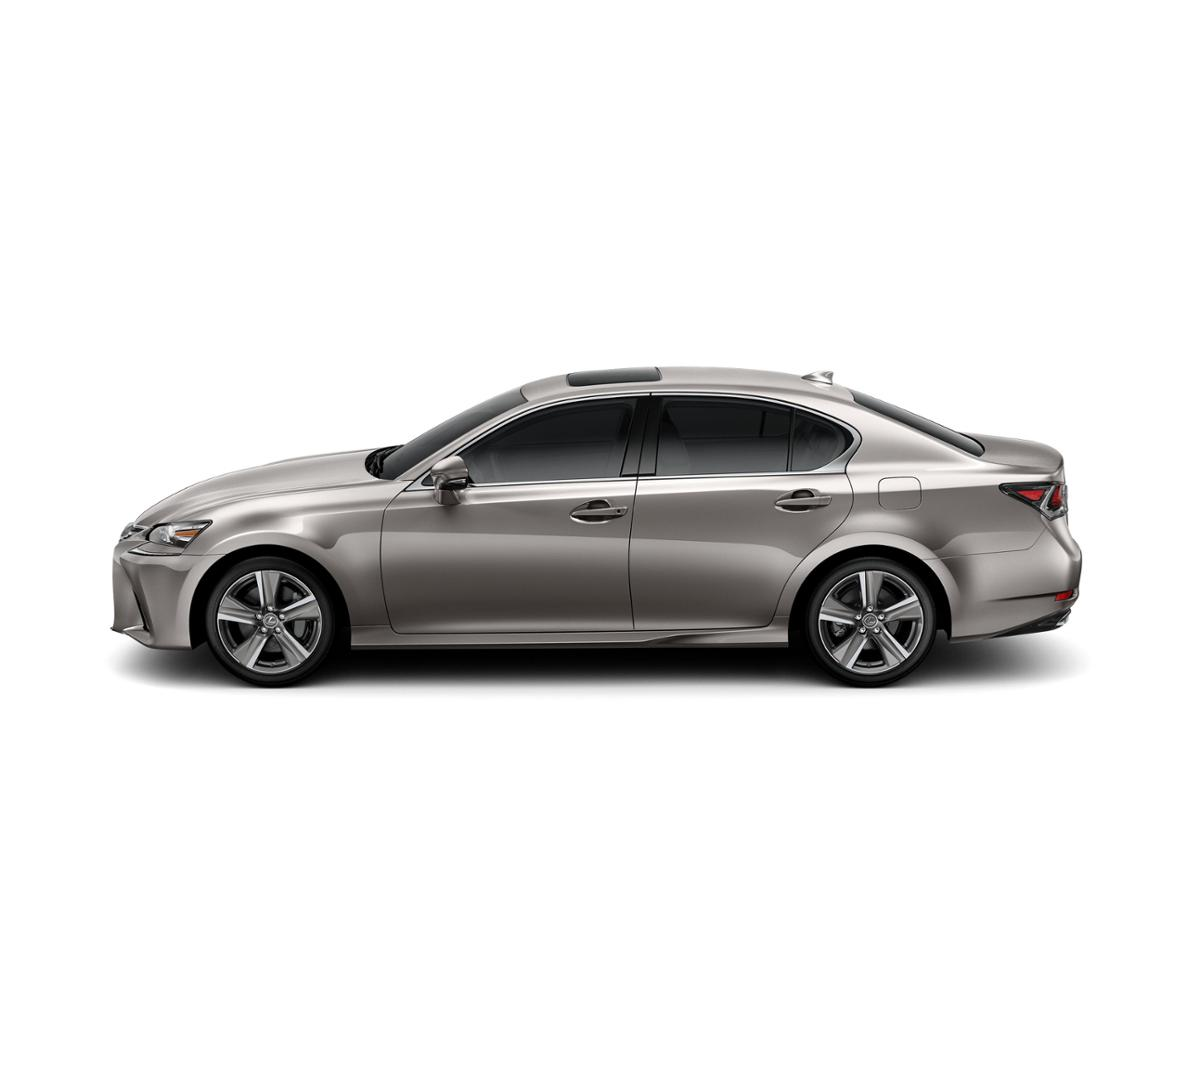 East Haven Lexus GS 350 2019 Atomic Silver: New Car For